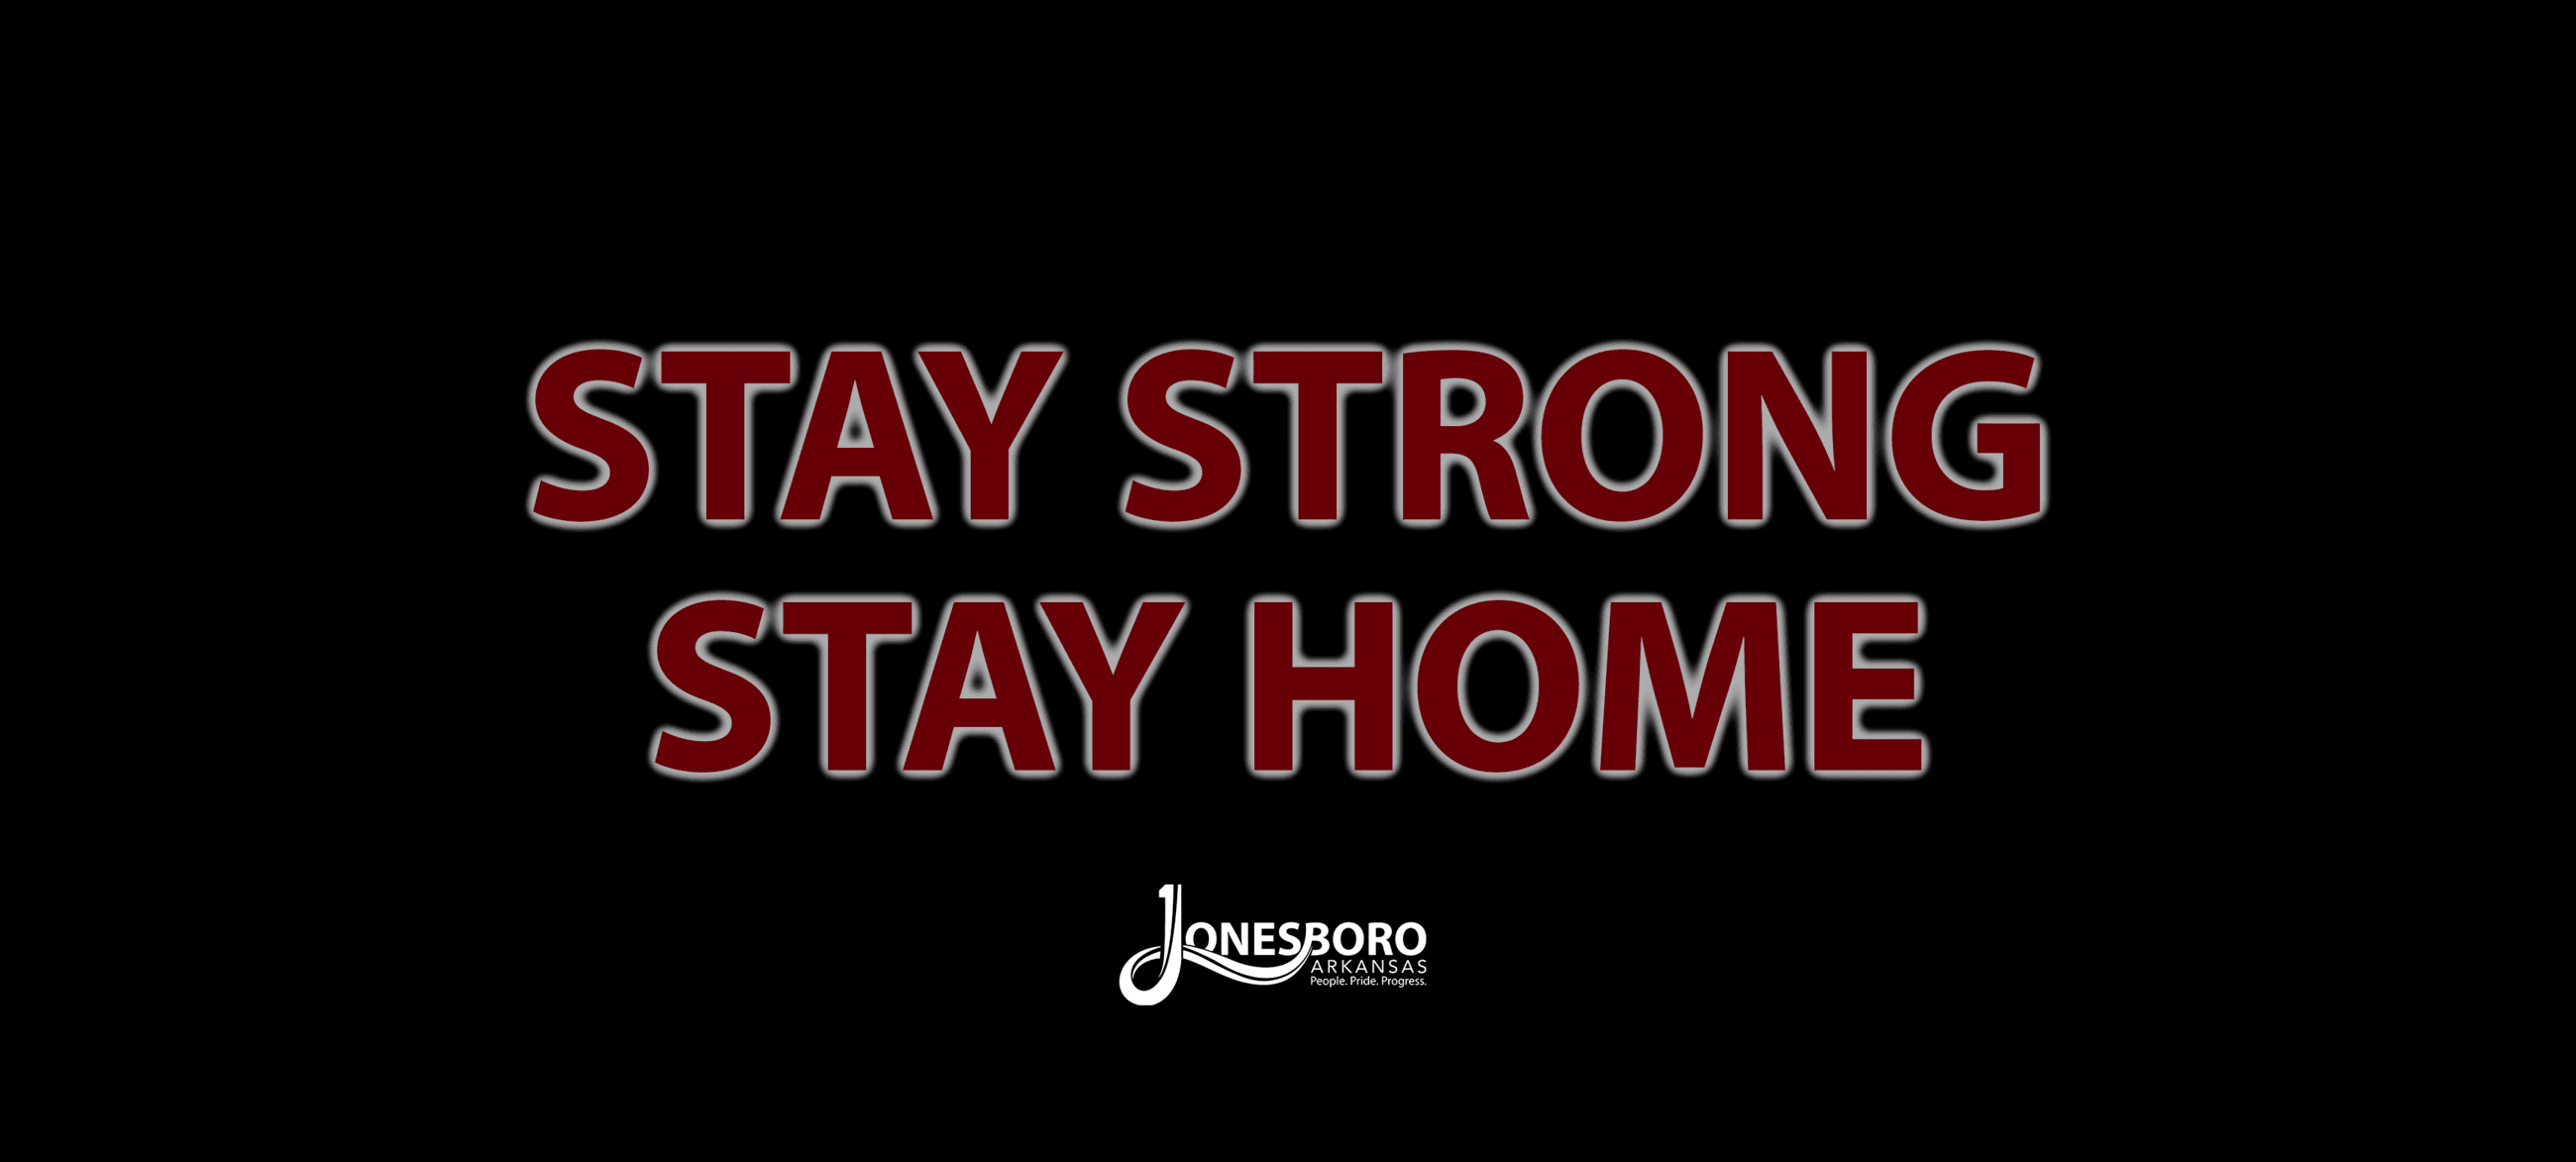 Stay Strong Stay Home graphic